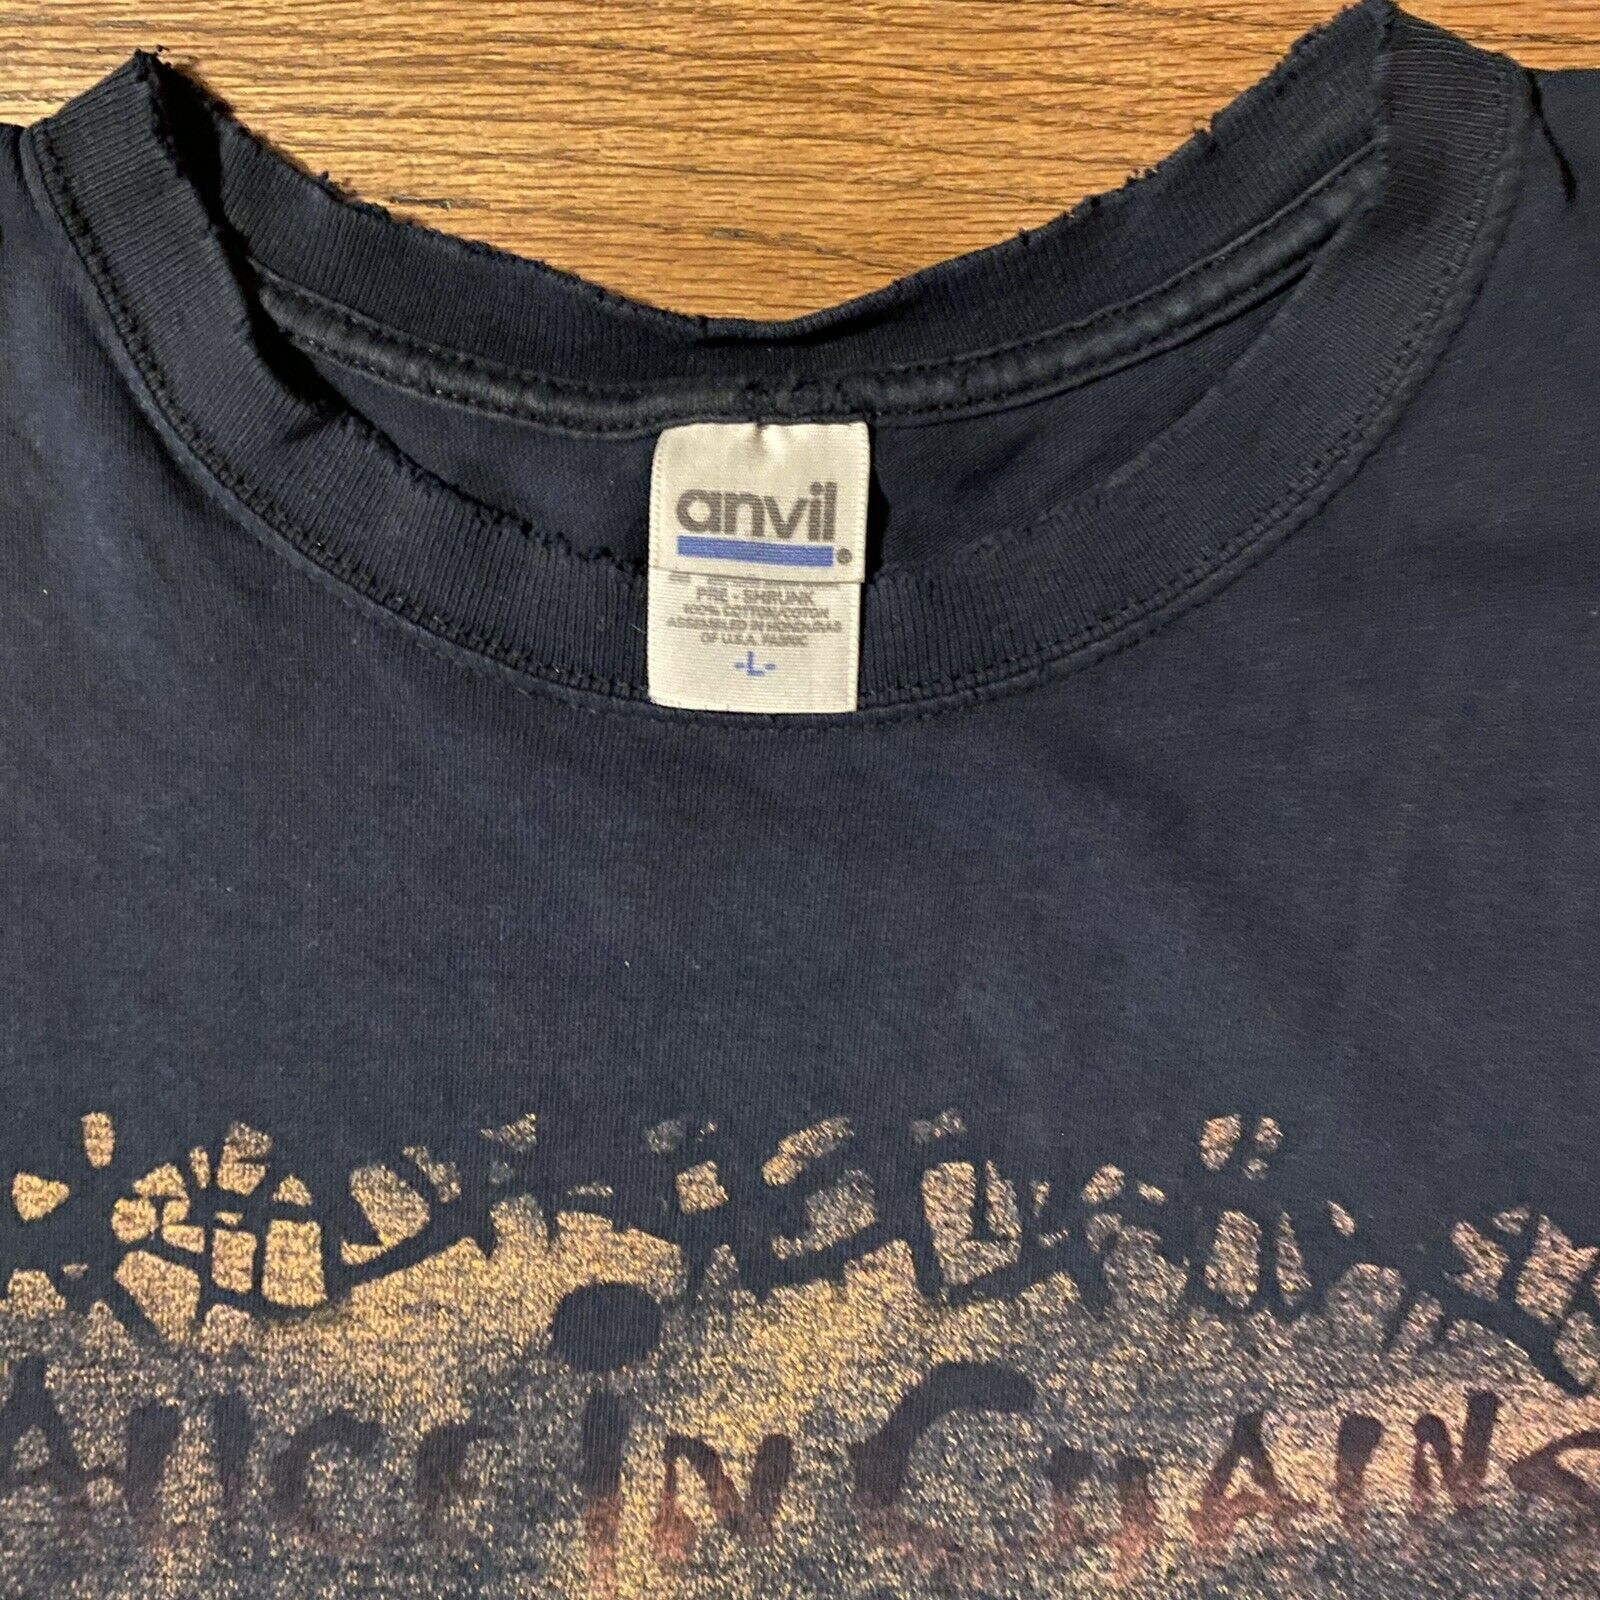 vintage alice in chains shirt - image 3